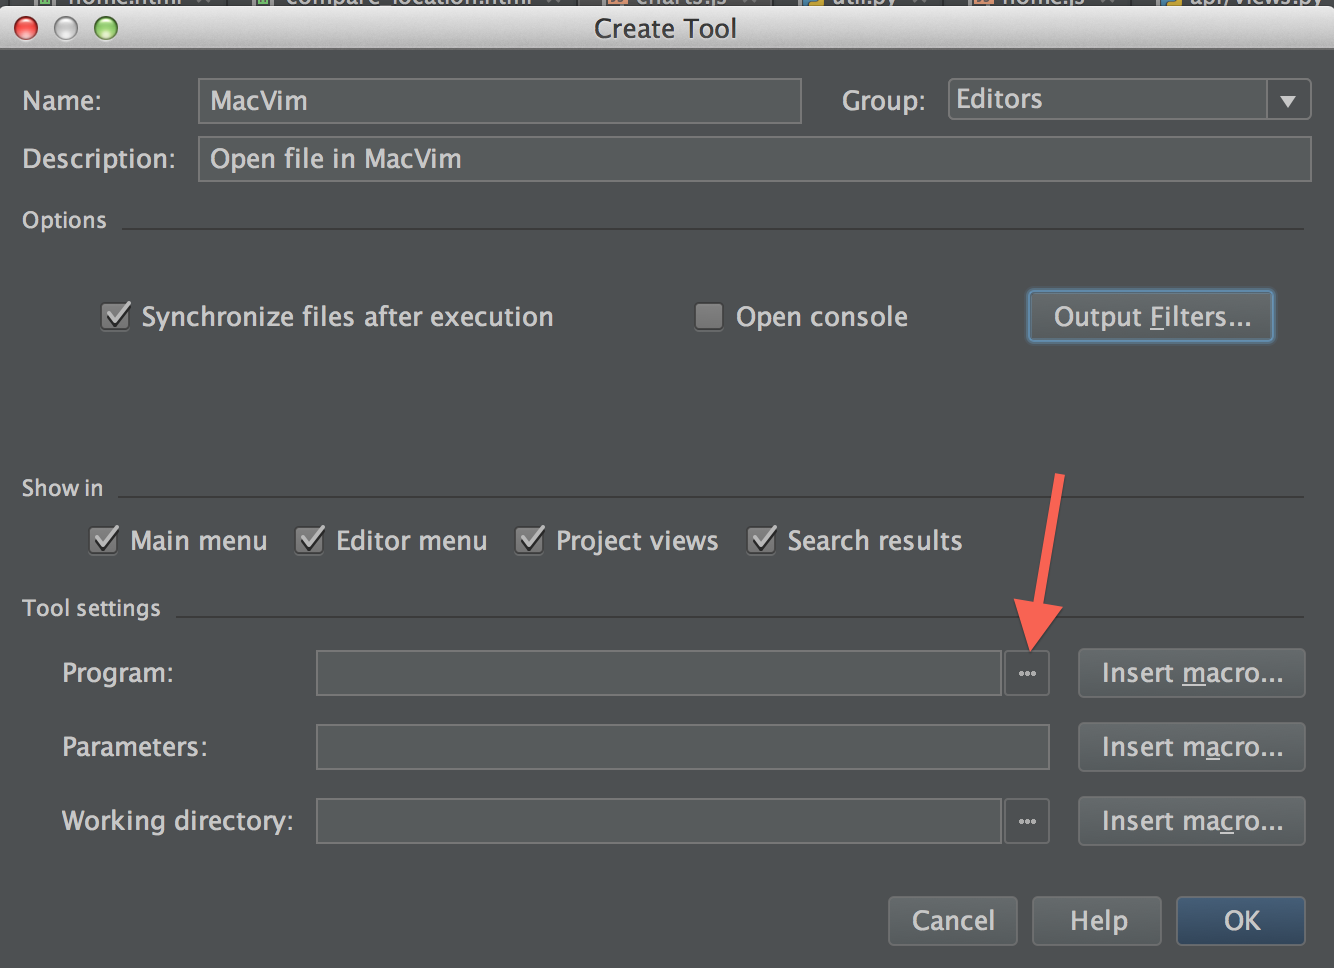 Setting the program path for an external tool in PyCharm